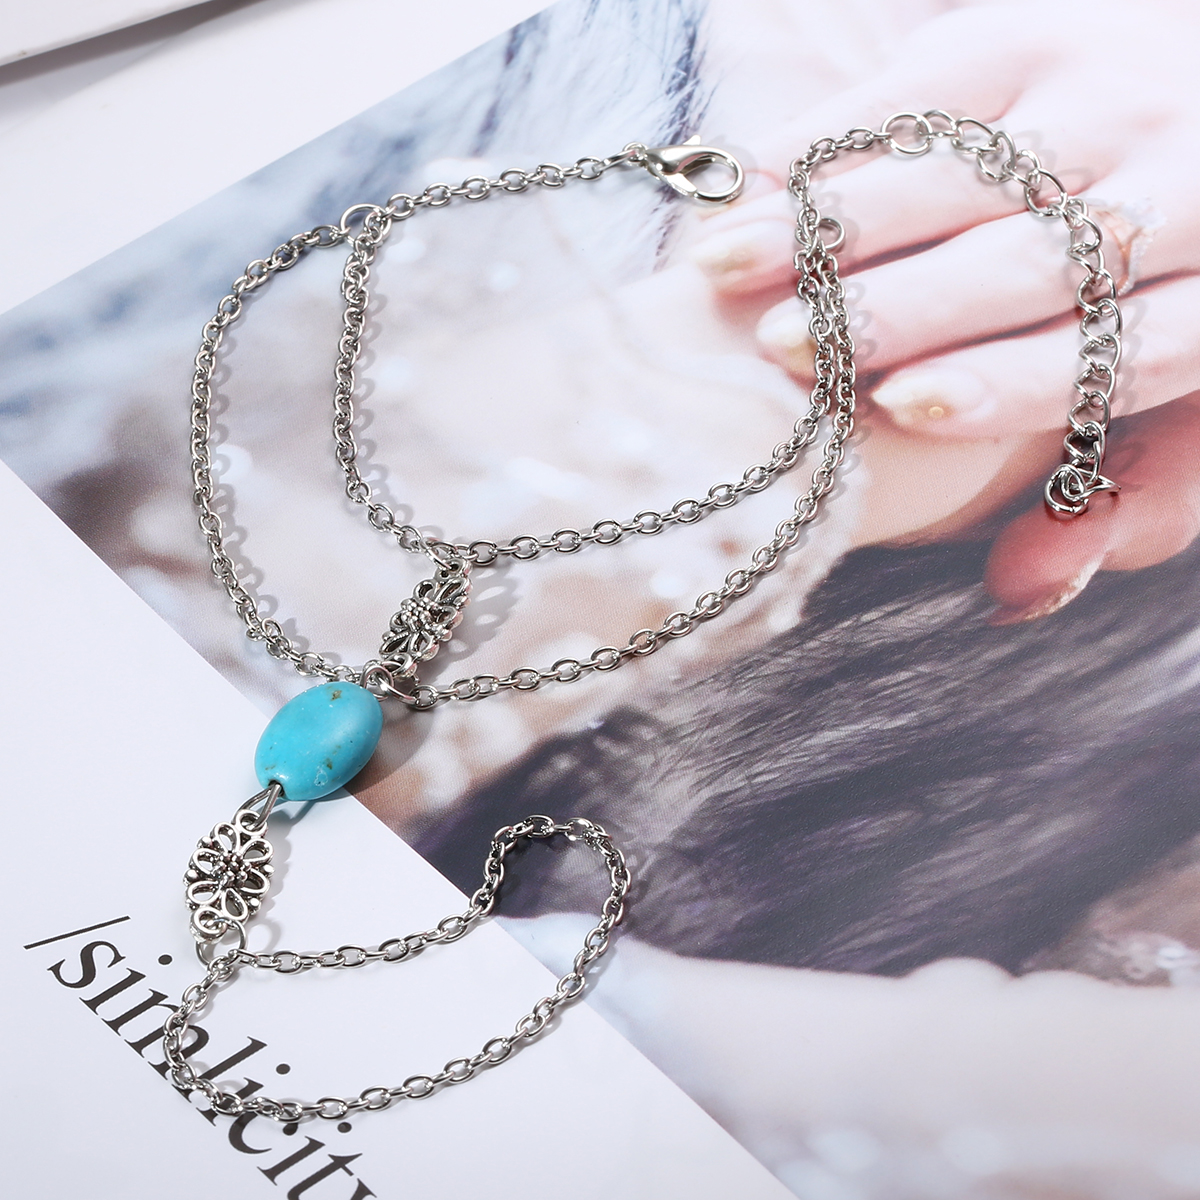 Fashion Chain Bracelet Drop Punk Silver Plated Women Metal Hand Harness Chain Turquoise Beads Slave Finger Ring Boho Jewelry